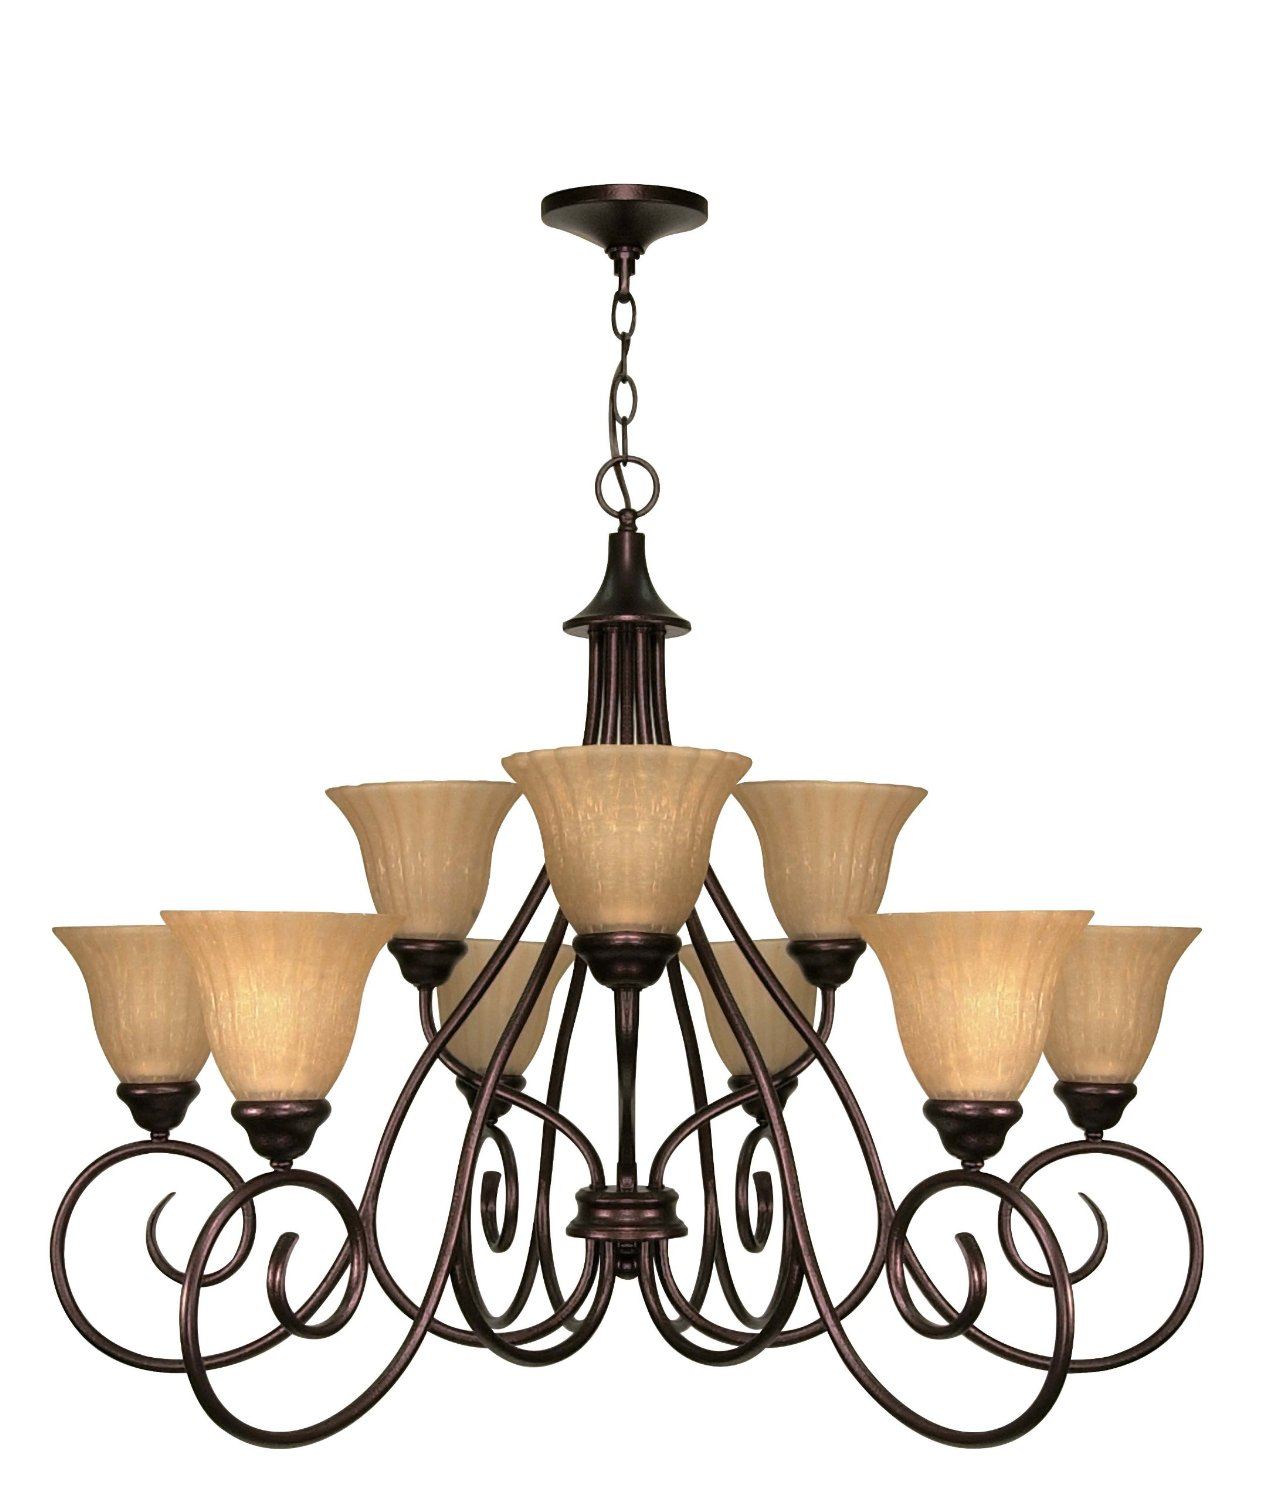 nuvo lighting 3 Tier 12 Light Chandelier with Champagne Glass for home lighting ideas